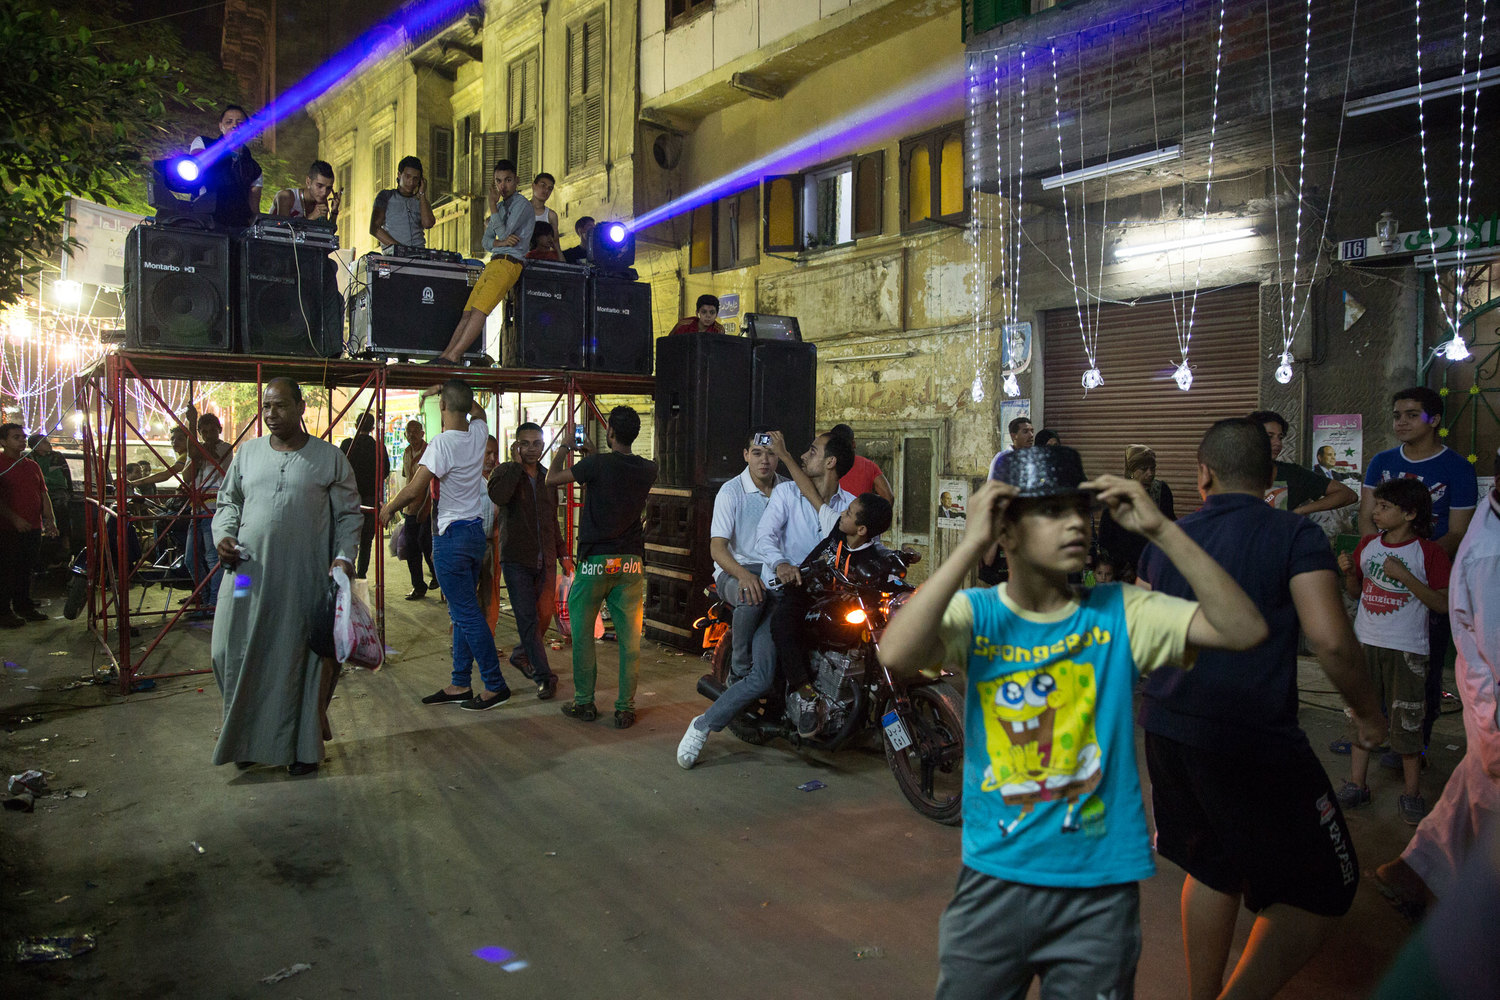 In a side street, local youth organized an electro-sha'abi dance party.  While the main streets are filled with the festival, the locals often stay in side streets at their own gatherings.